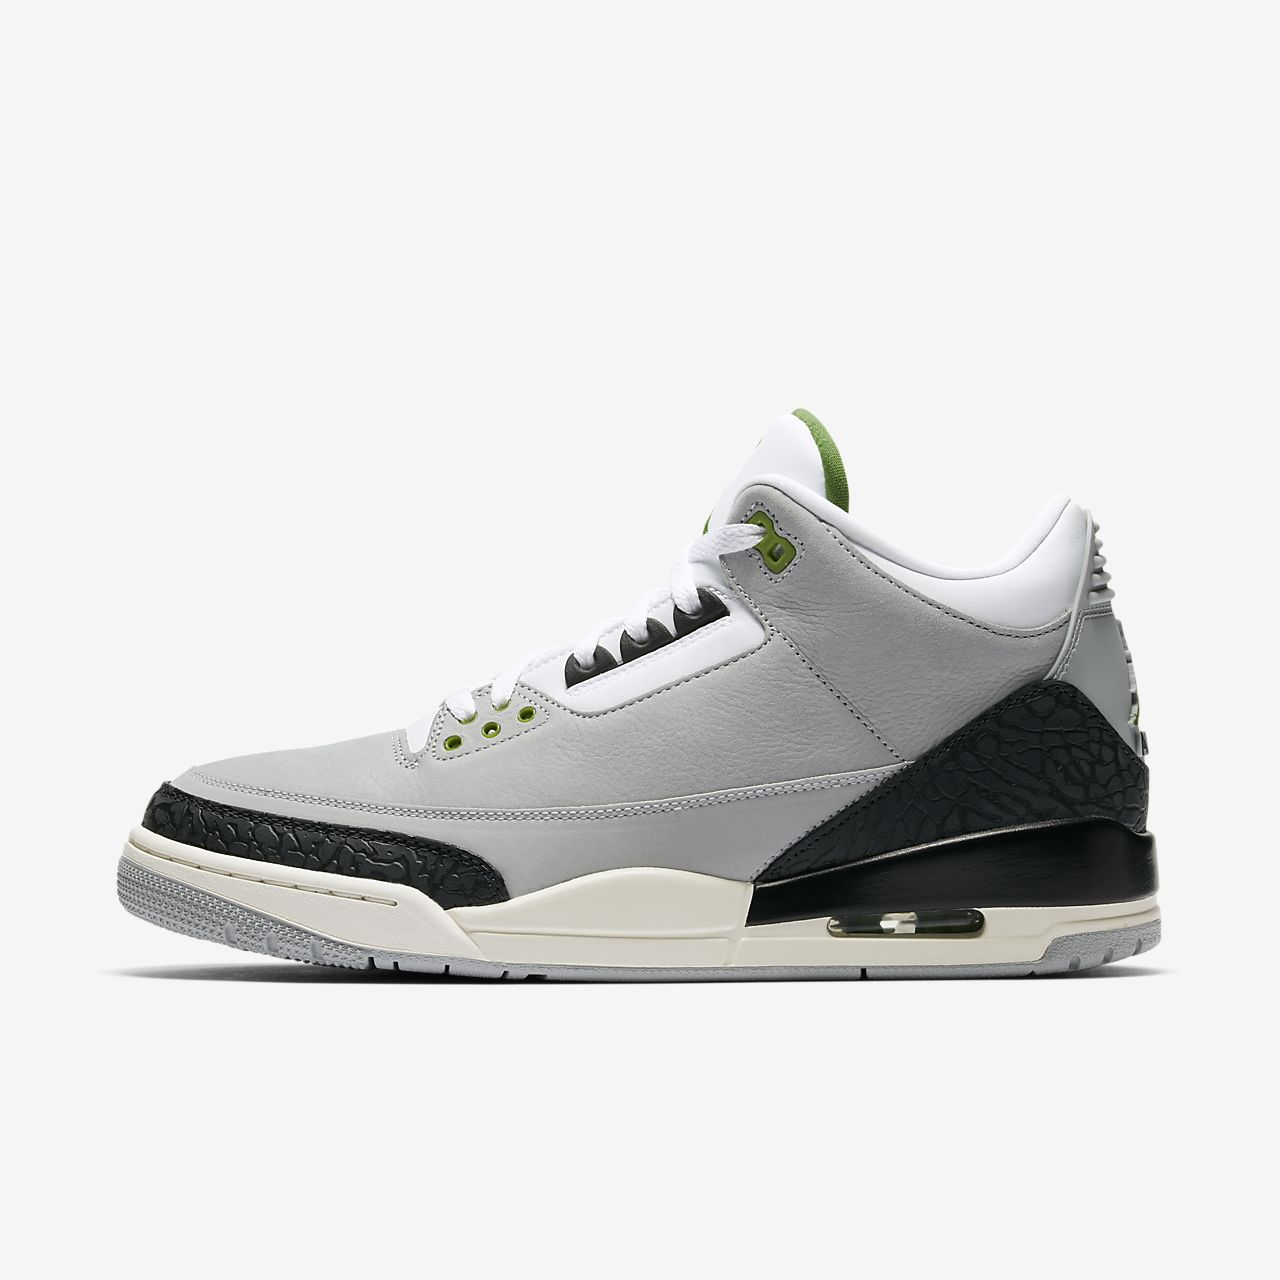 reputable site da4a7 eee97 ... Sko Air Jordan 3 Retro för män